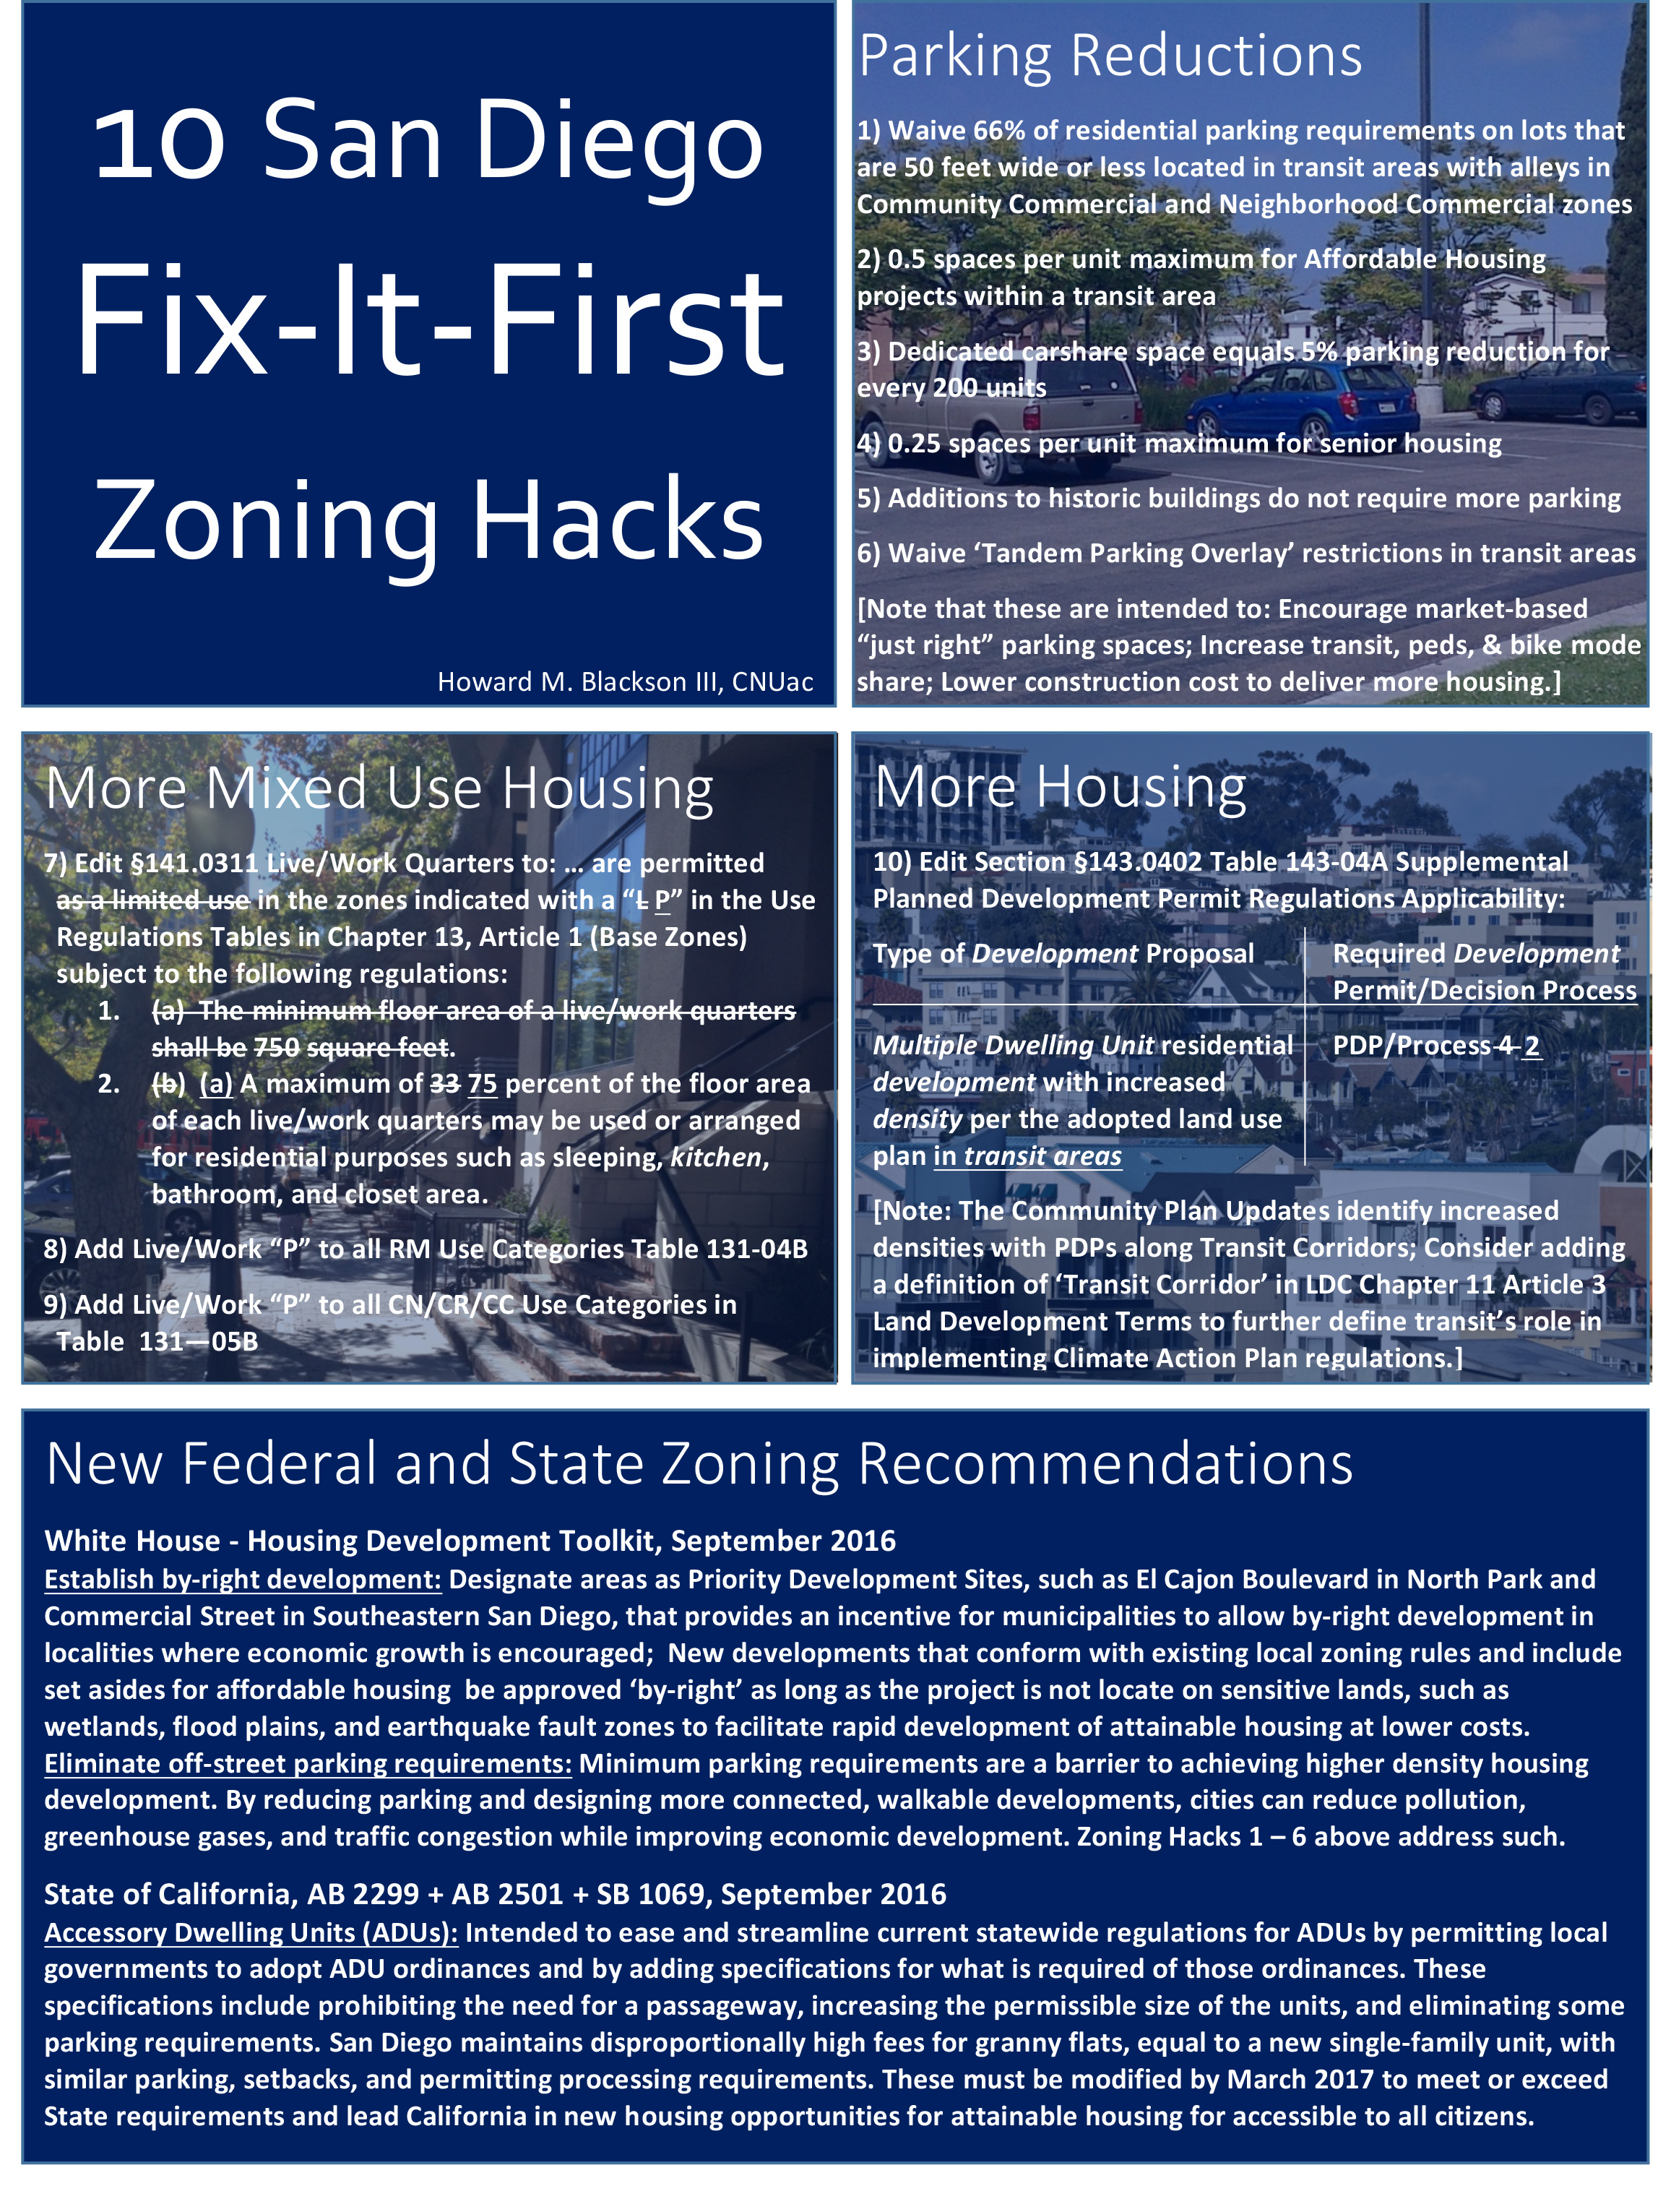 Microsoft Word - Top10Fix-It-First.docx